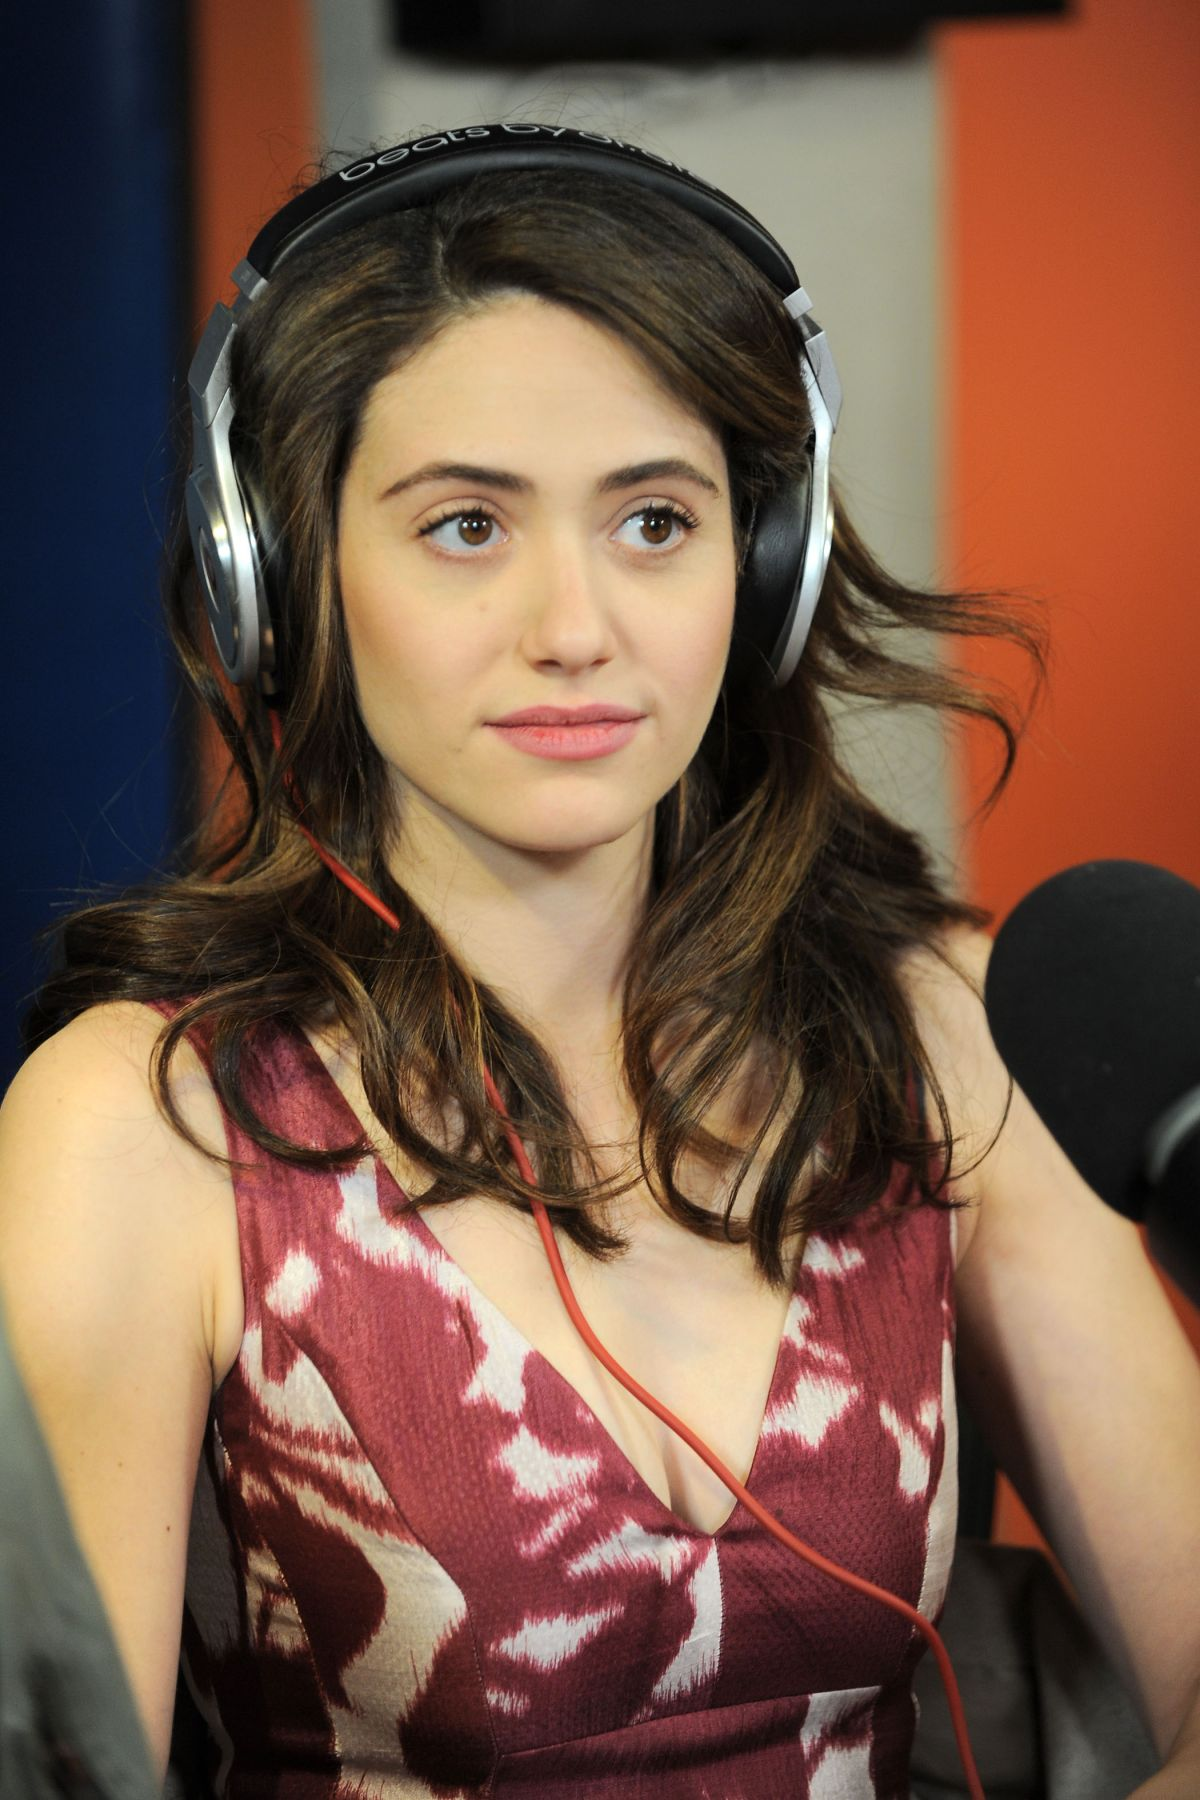 emmy rossum – slow me down